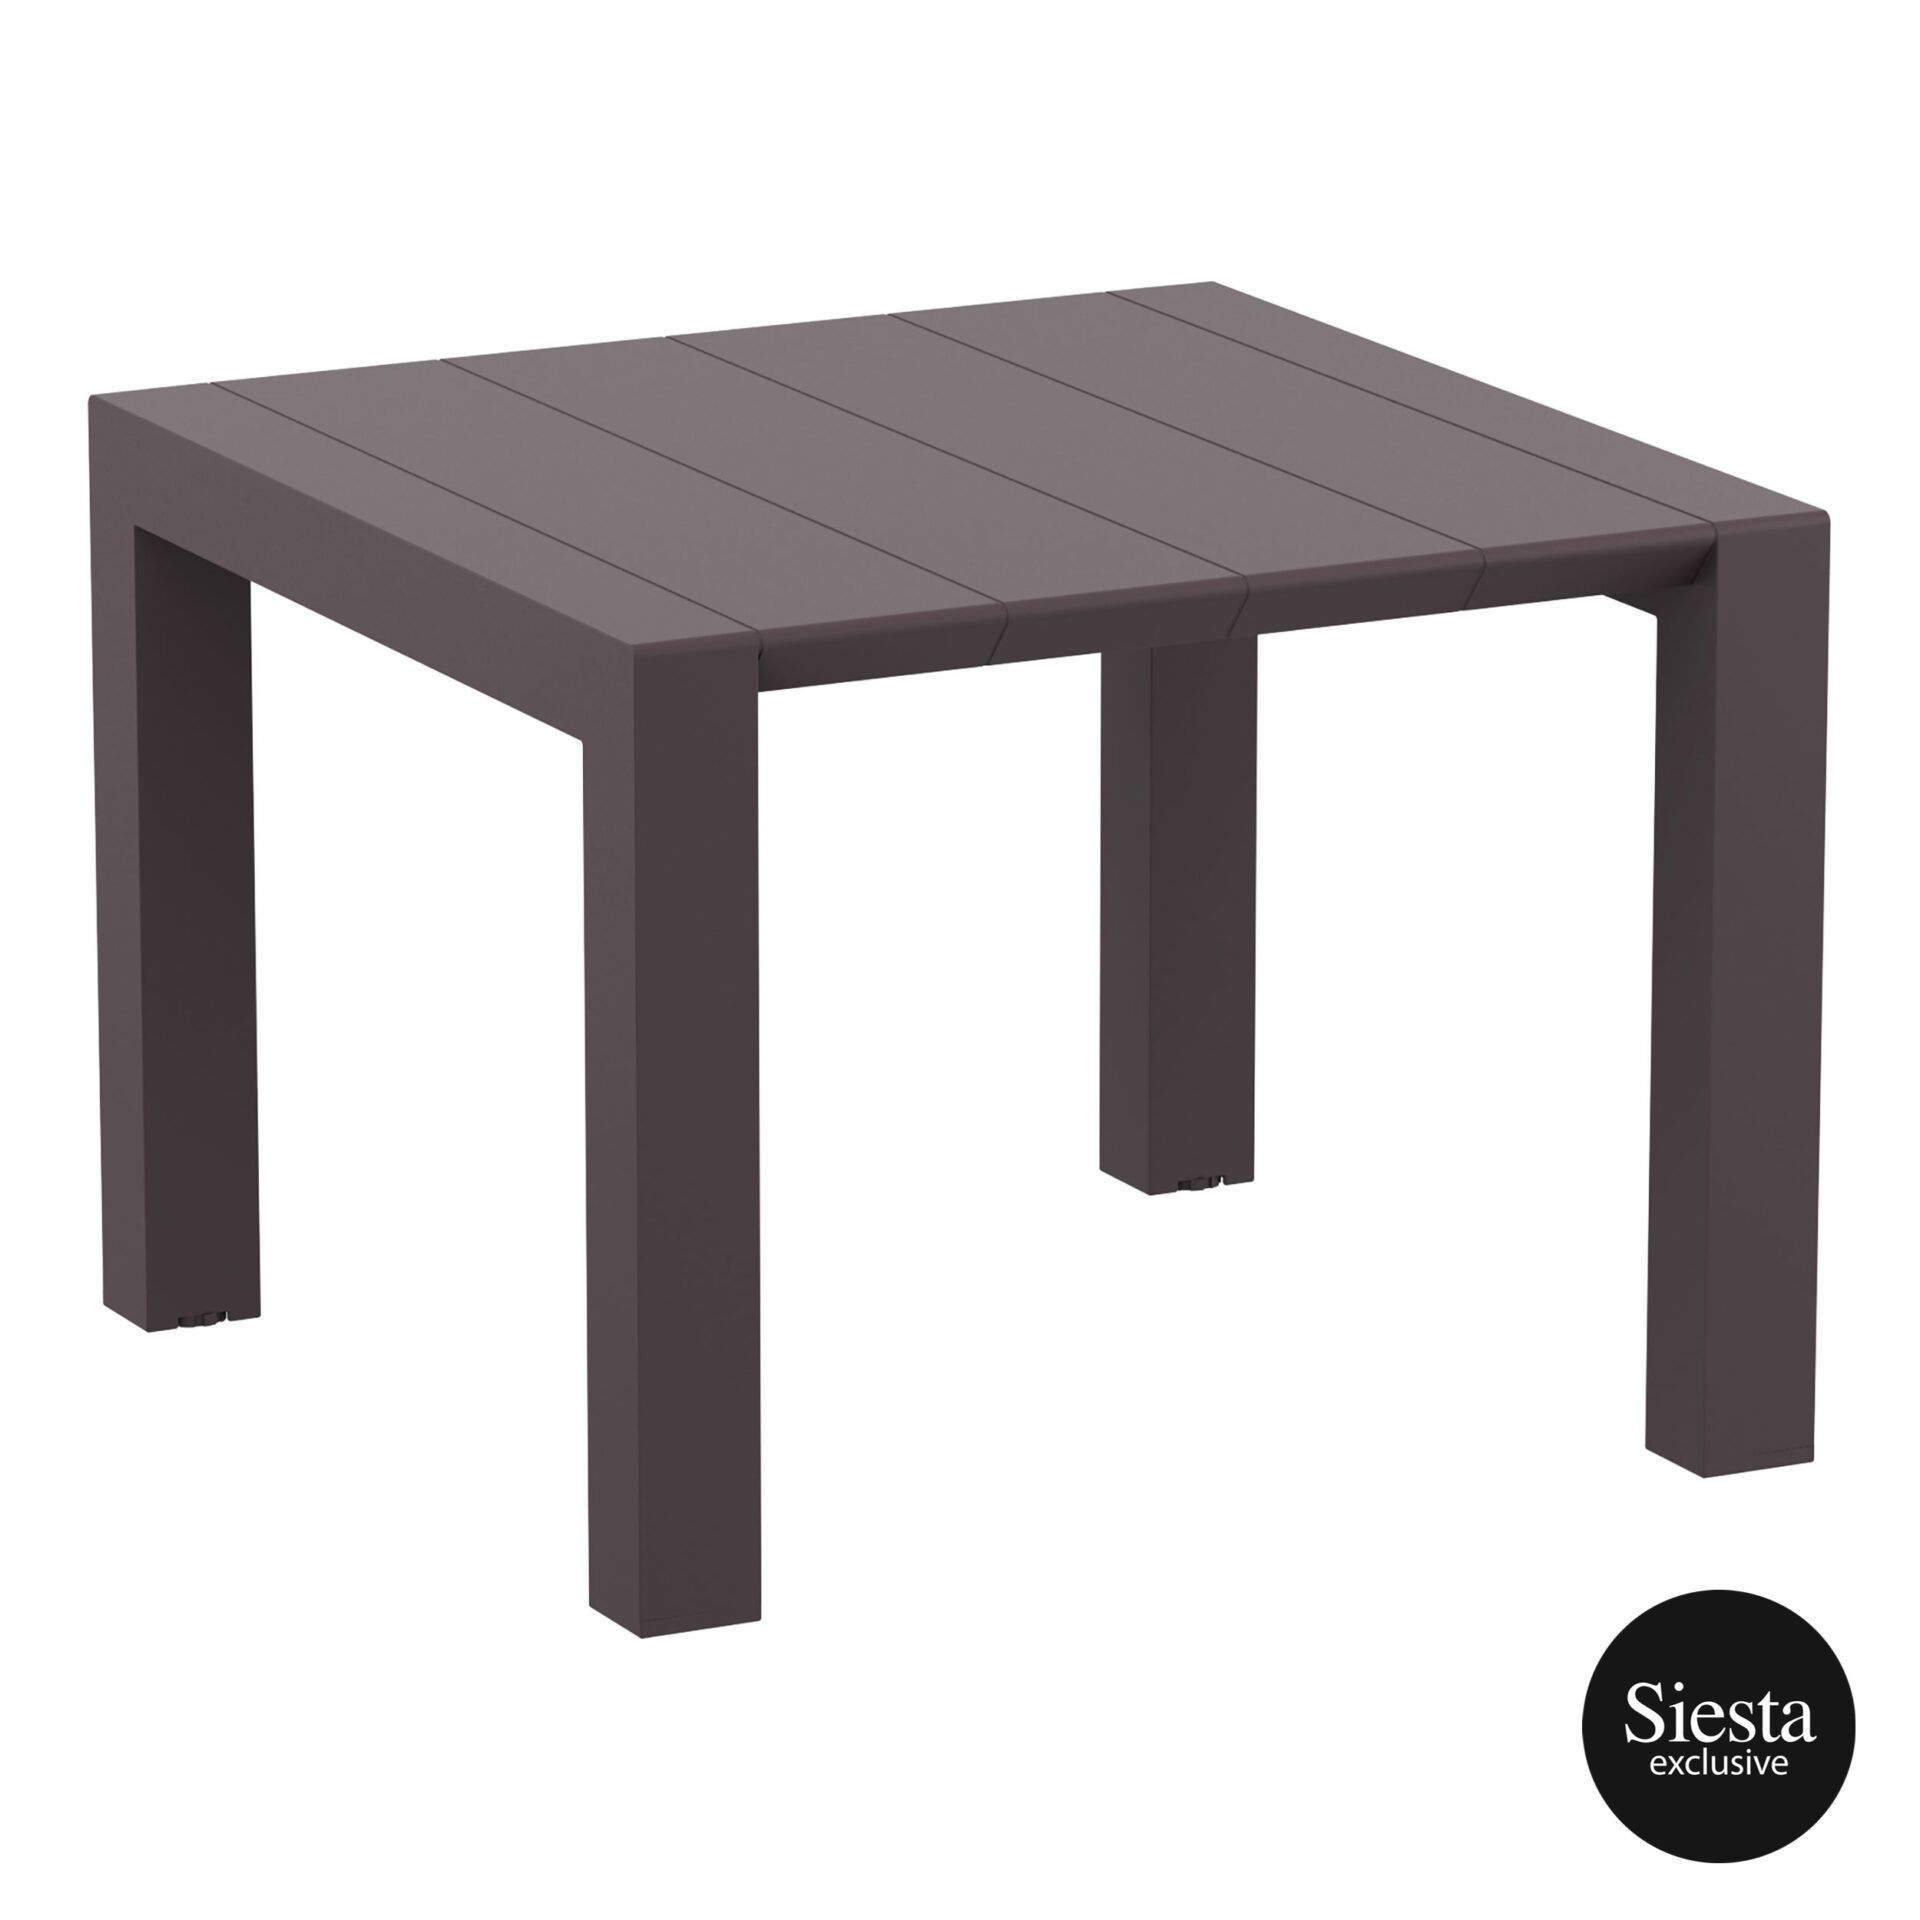 008 vegas table 100 rattan brown front side